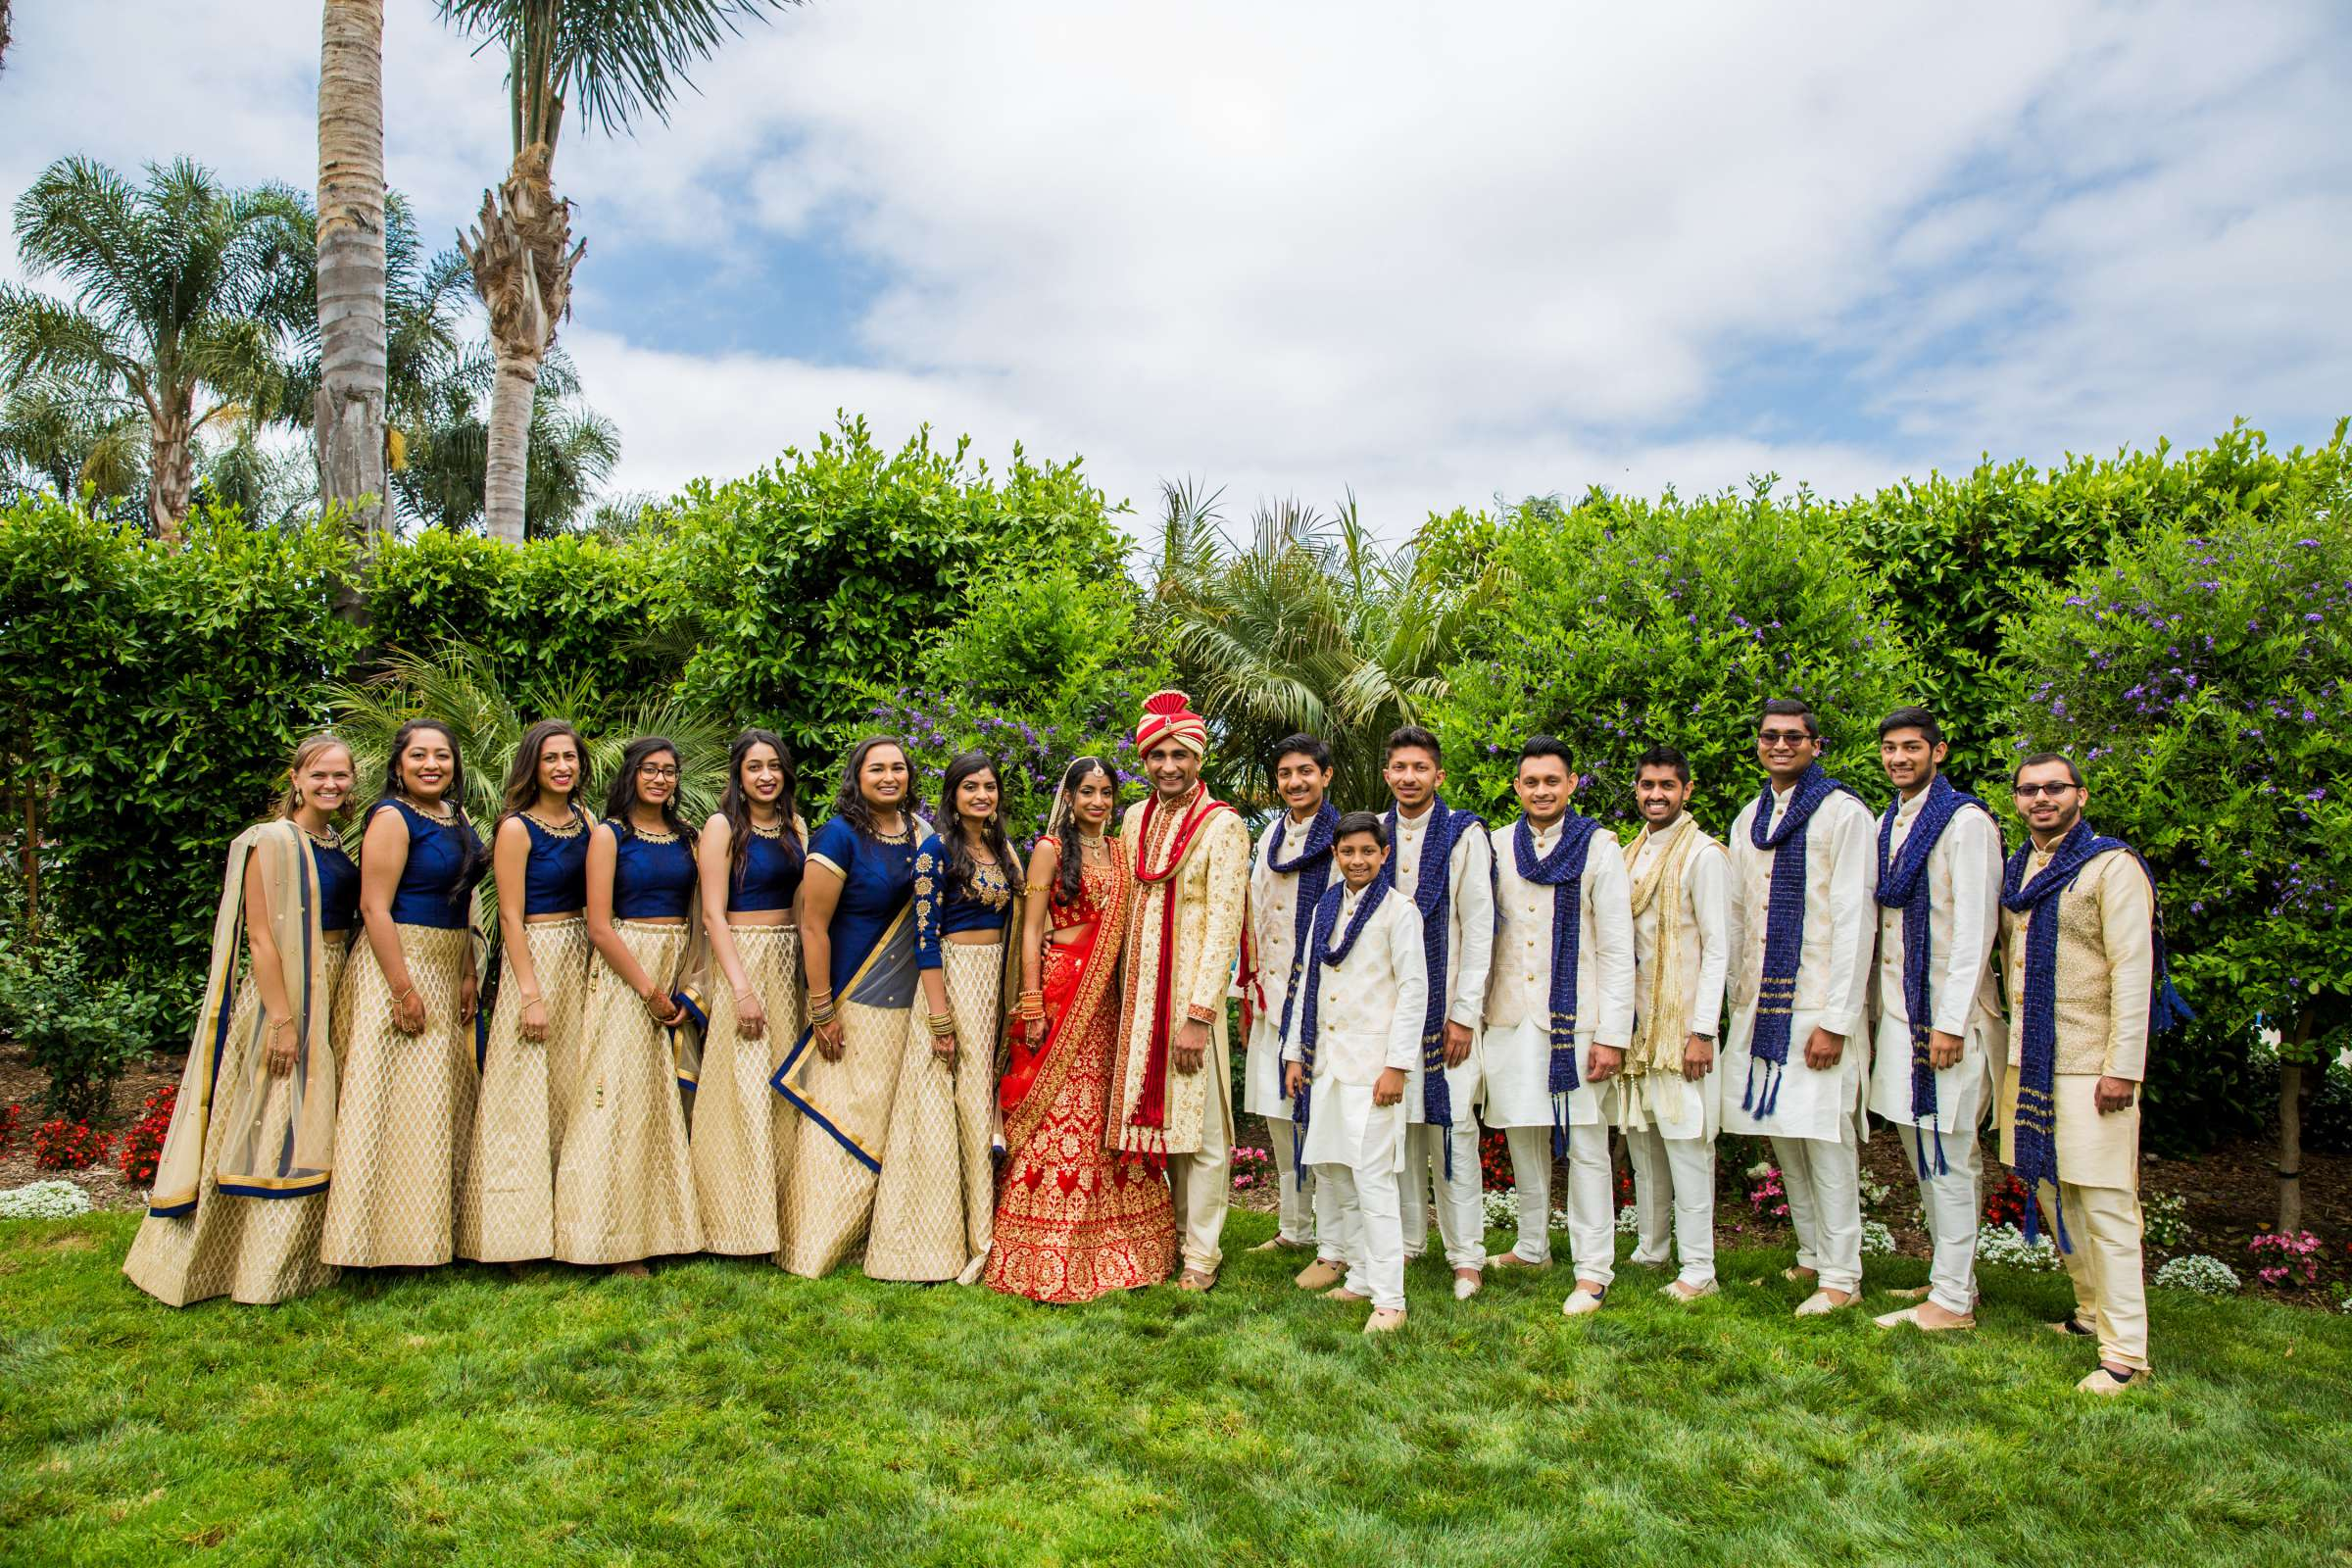 The Westin Carlsbad Resort and Spa Wedding coordinated by Shilpa Patel Events, Ami and Amit Wedding Photo #25 by True Photography